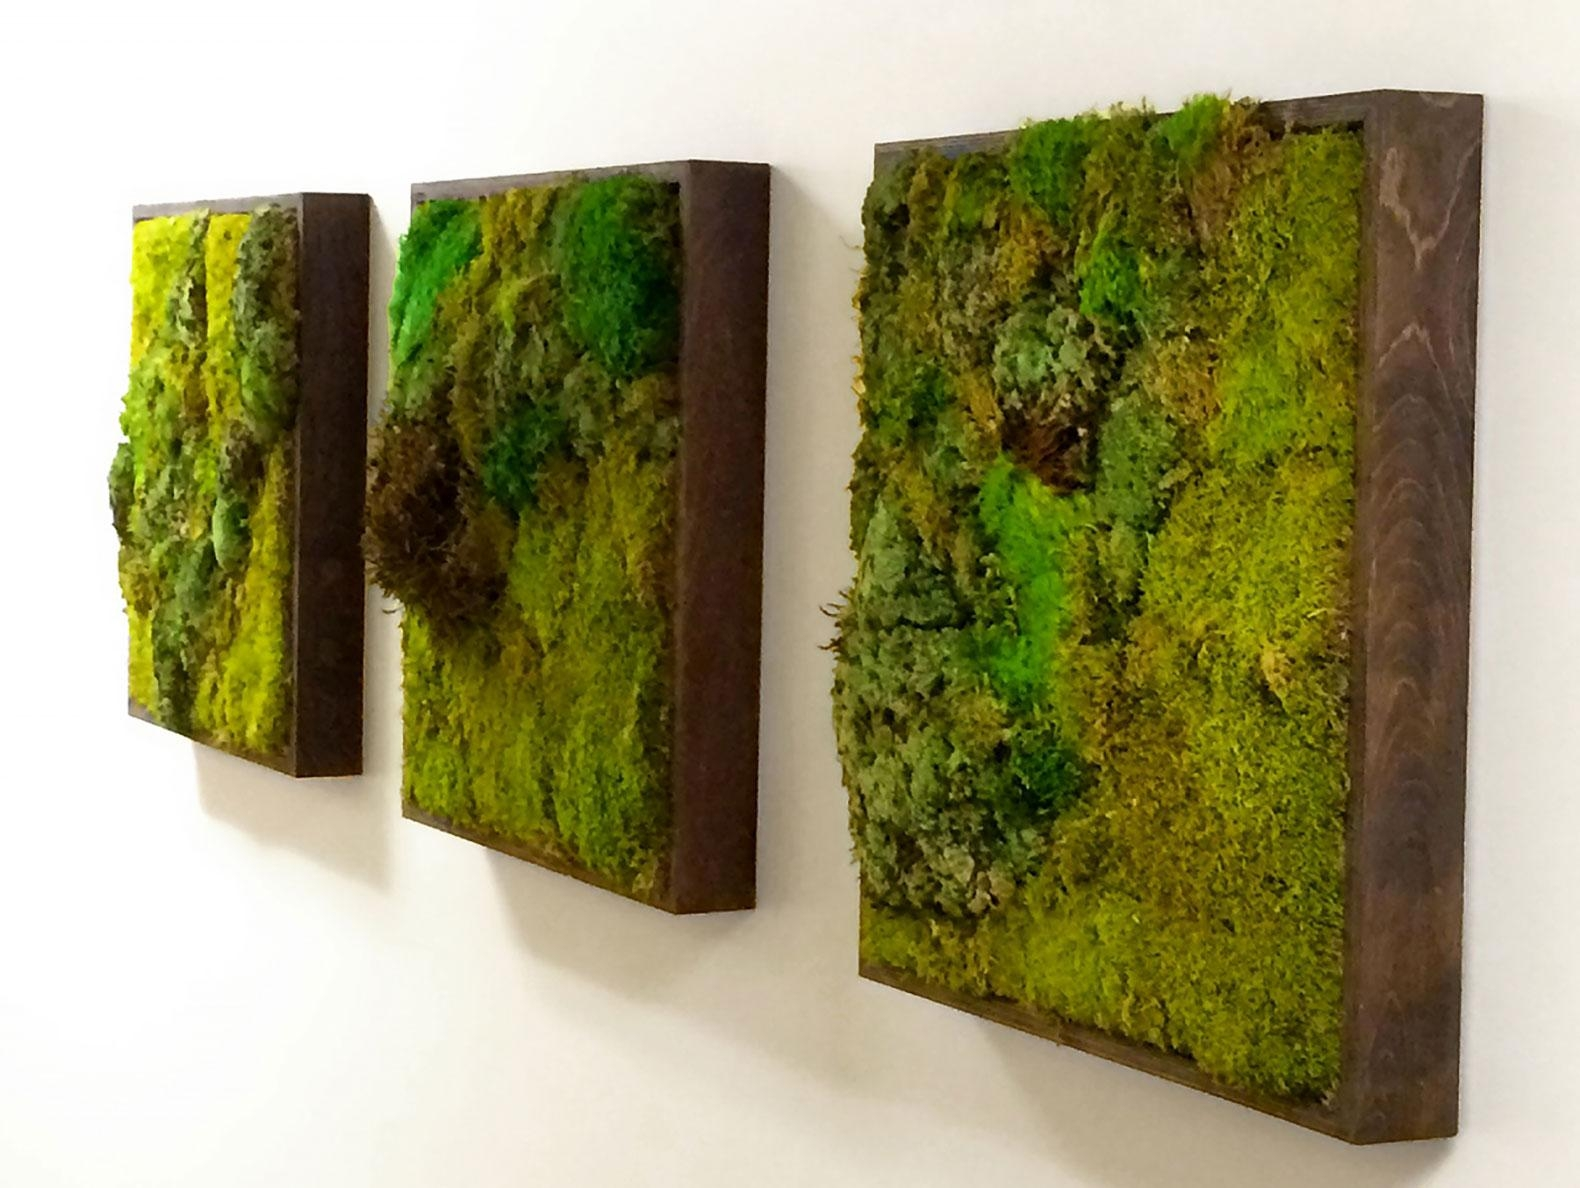 Appealing Artificial Green Wall Panels Wall Art Excellent Kitchen With Regard To Lime Green Metal Wall Art (View 10 of 20)